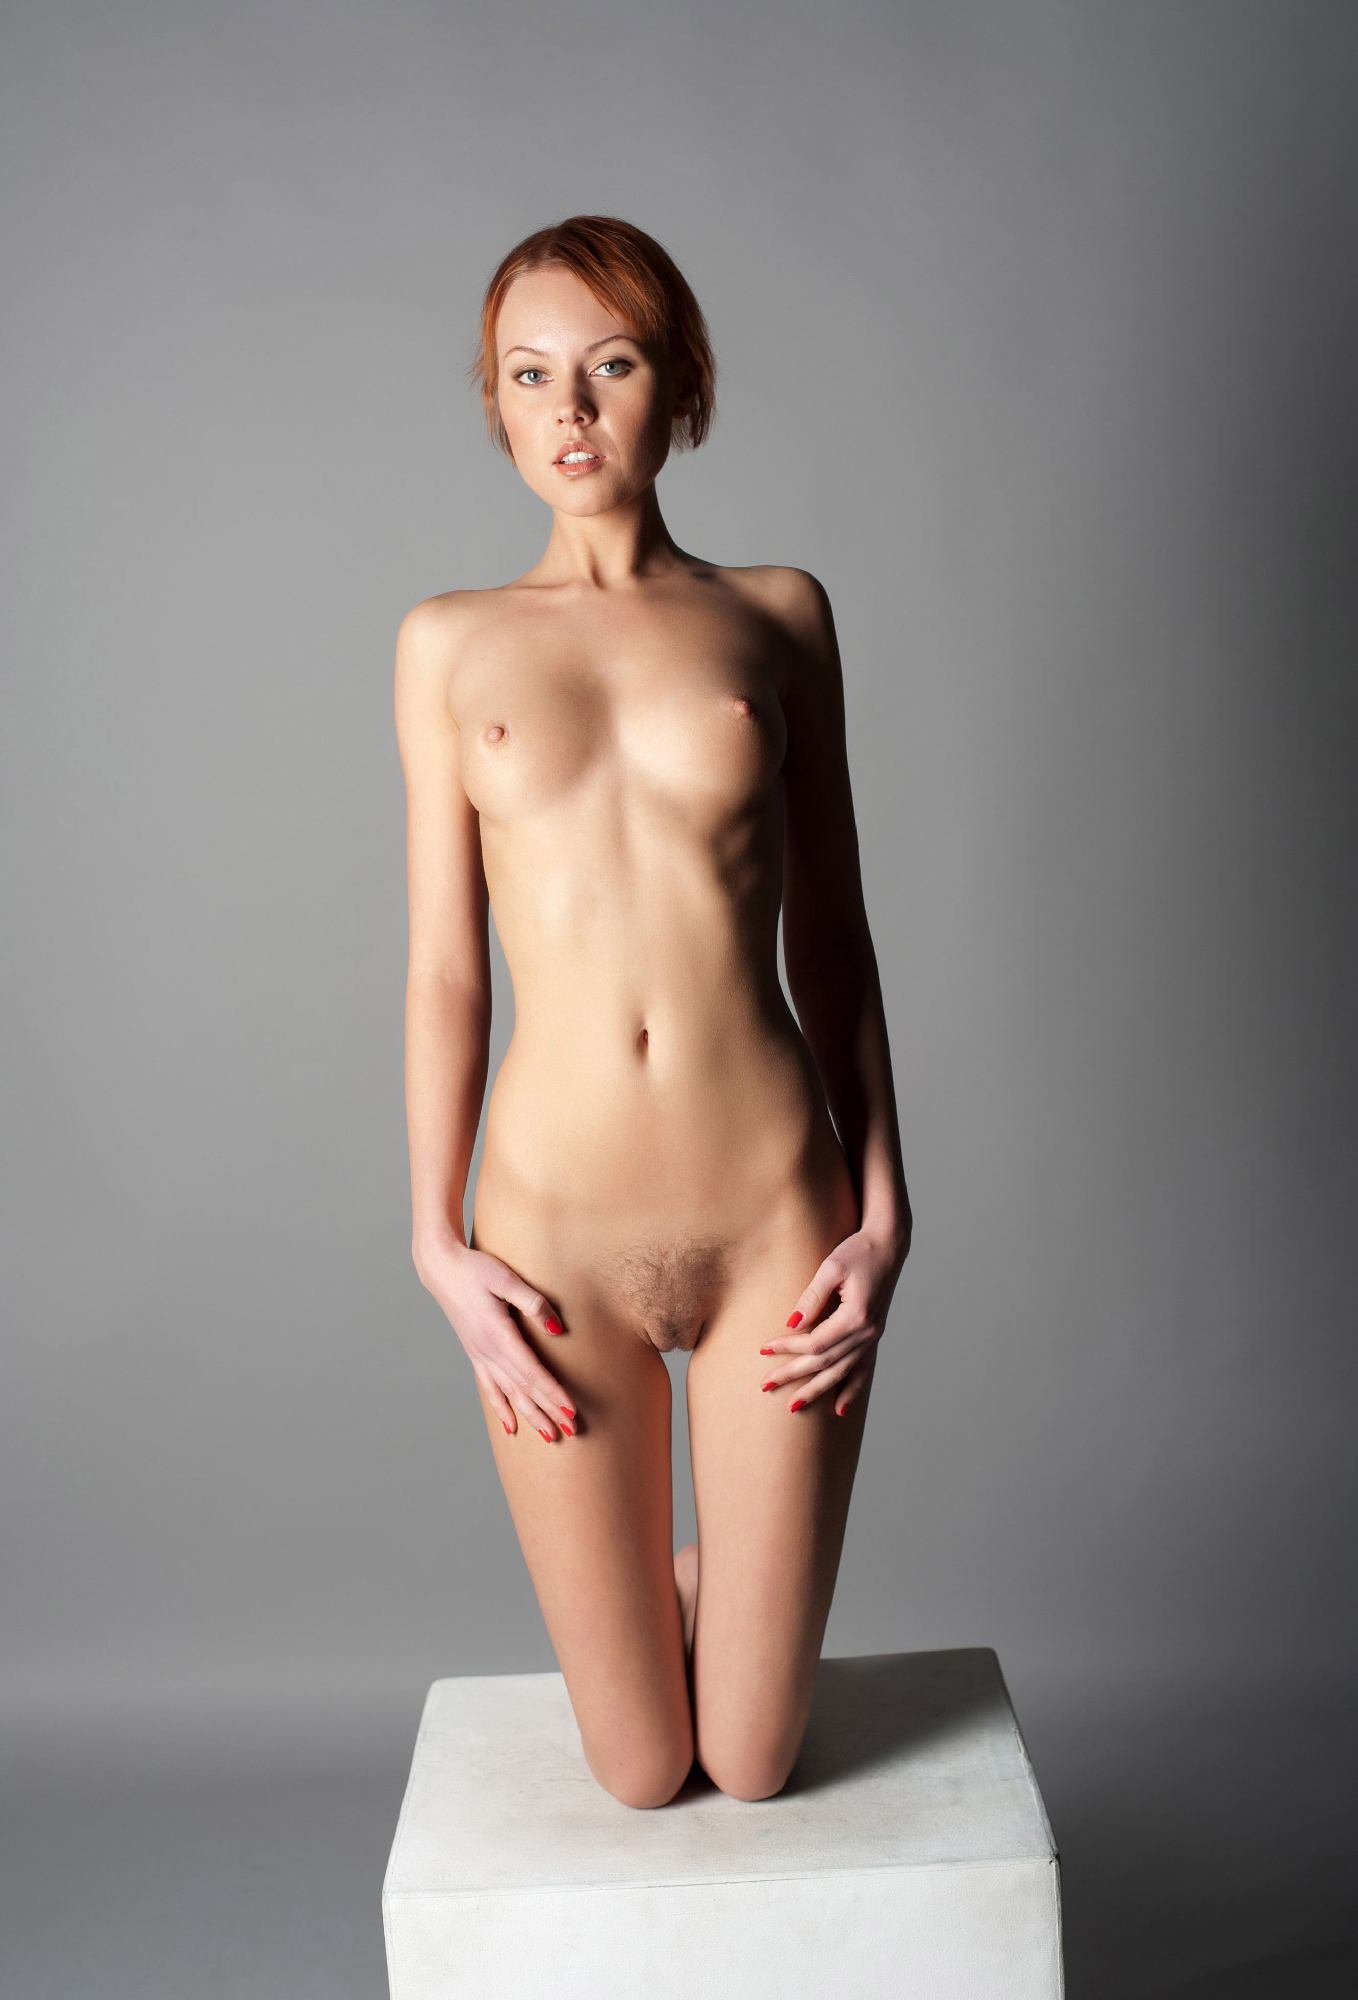 Small skinny sexy naked women — pic 1